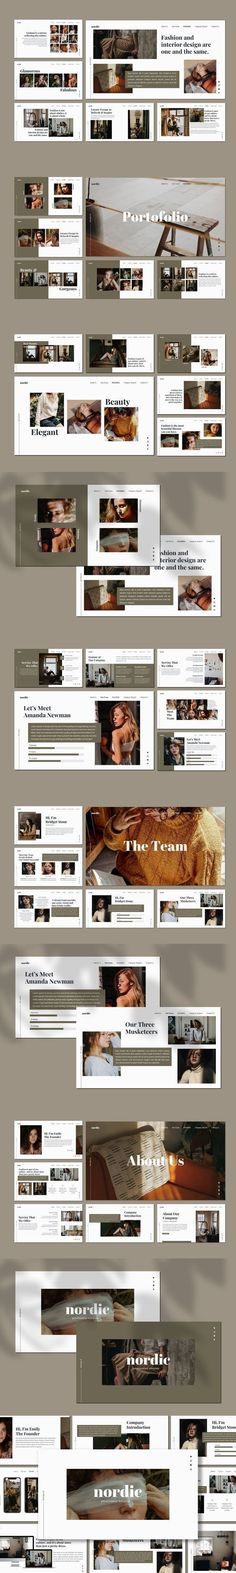 Nordic - Powerpoint Template